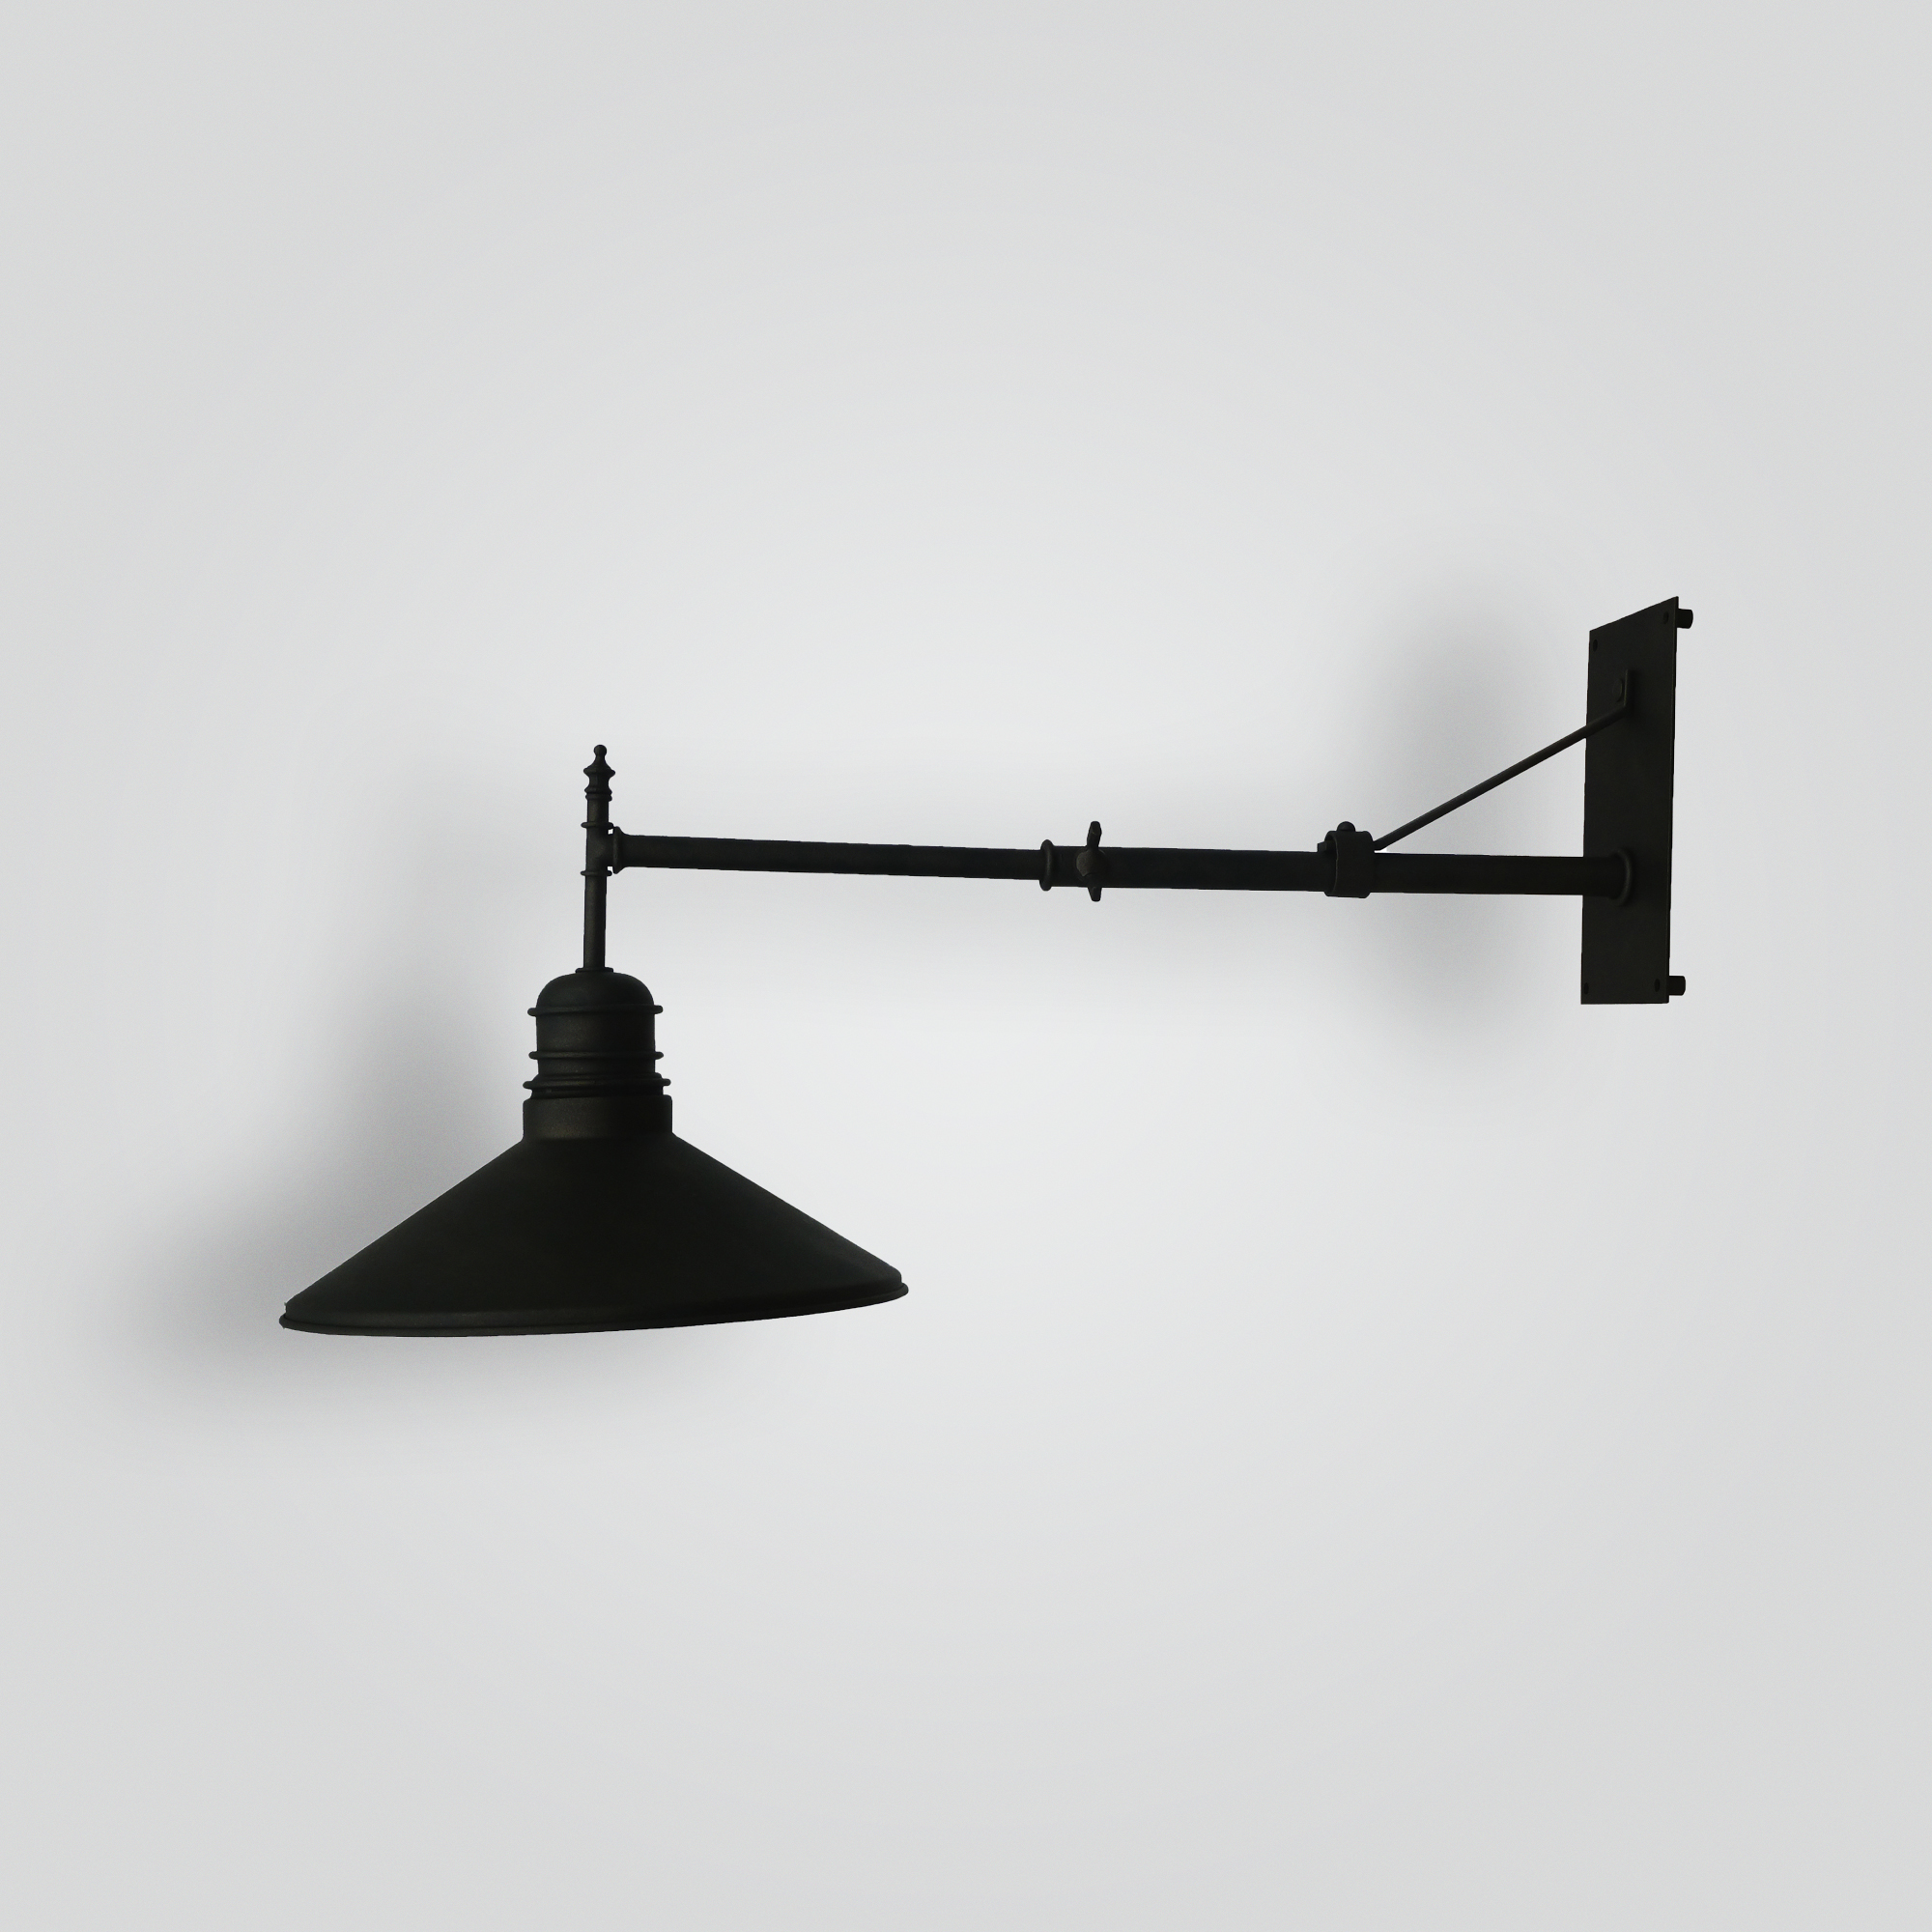 80599-mb1-ir-w-ba-side-view – ADG Lighting Collection